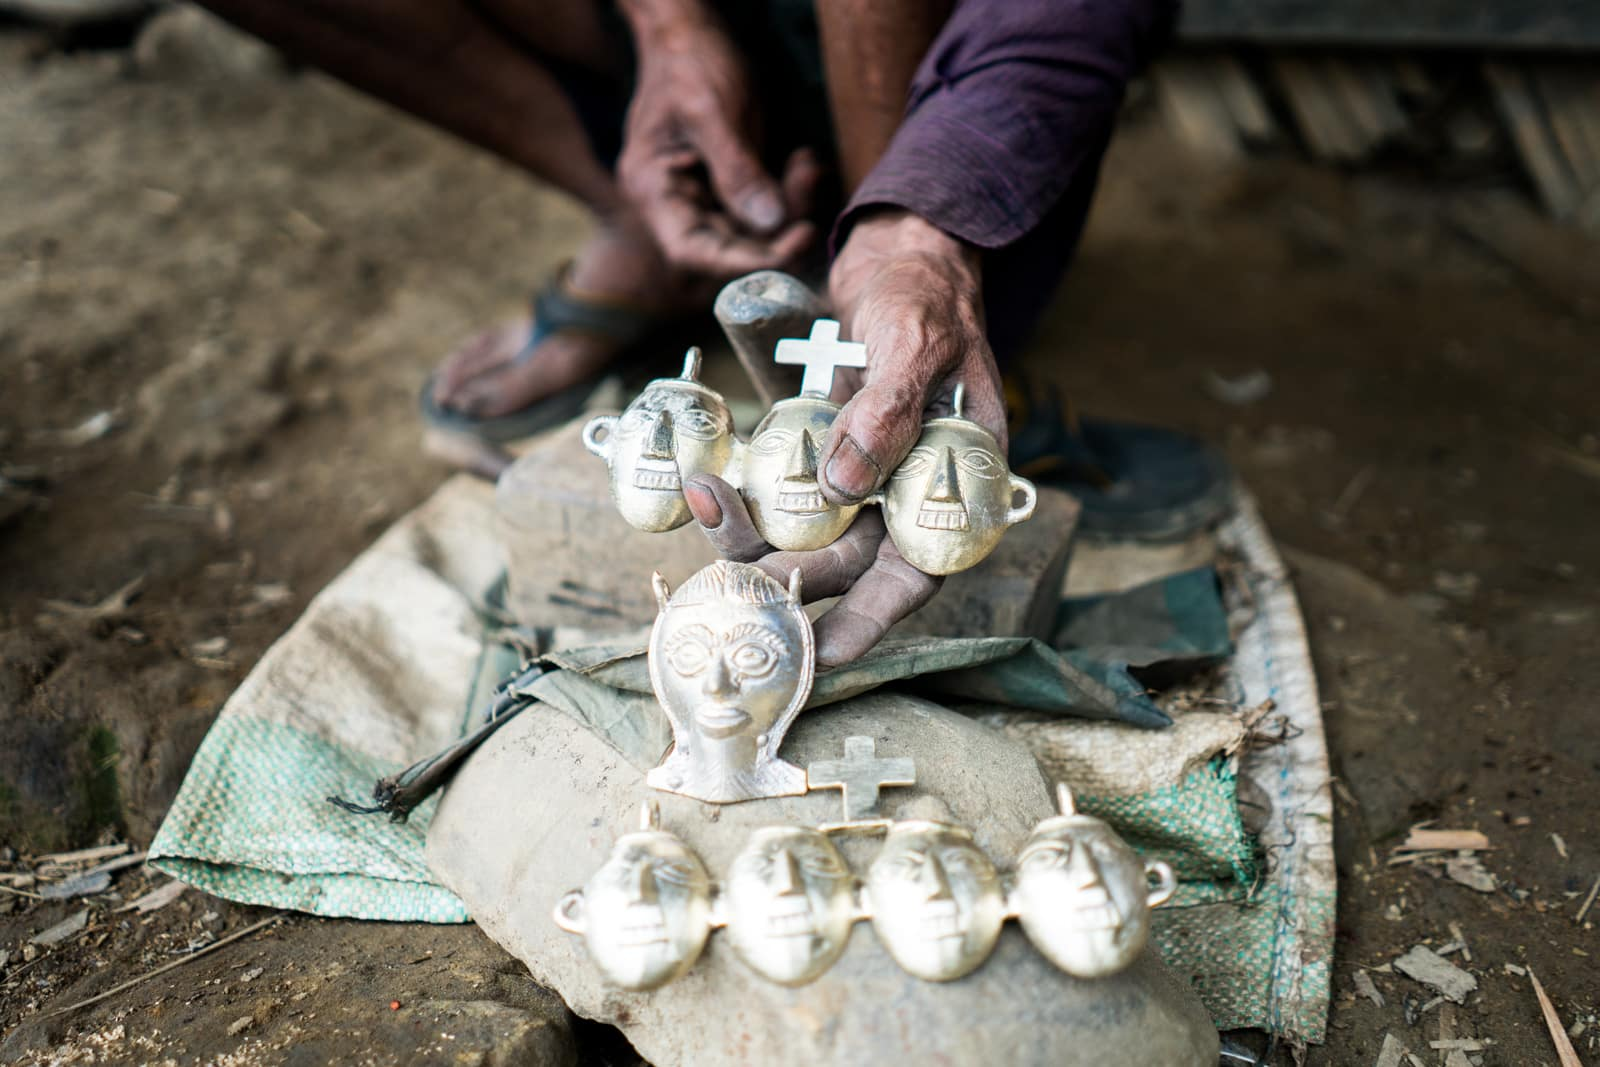 Opium and Jesus and headhunting in Longwa Village, Nagaland, India - Headhunter jewelry meets Christianity - Lost With Purpose